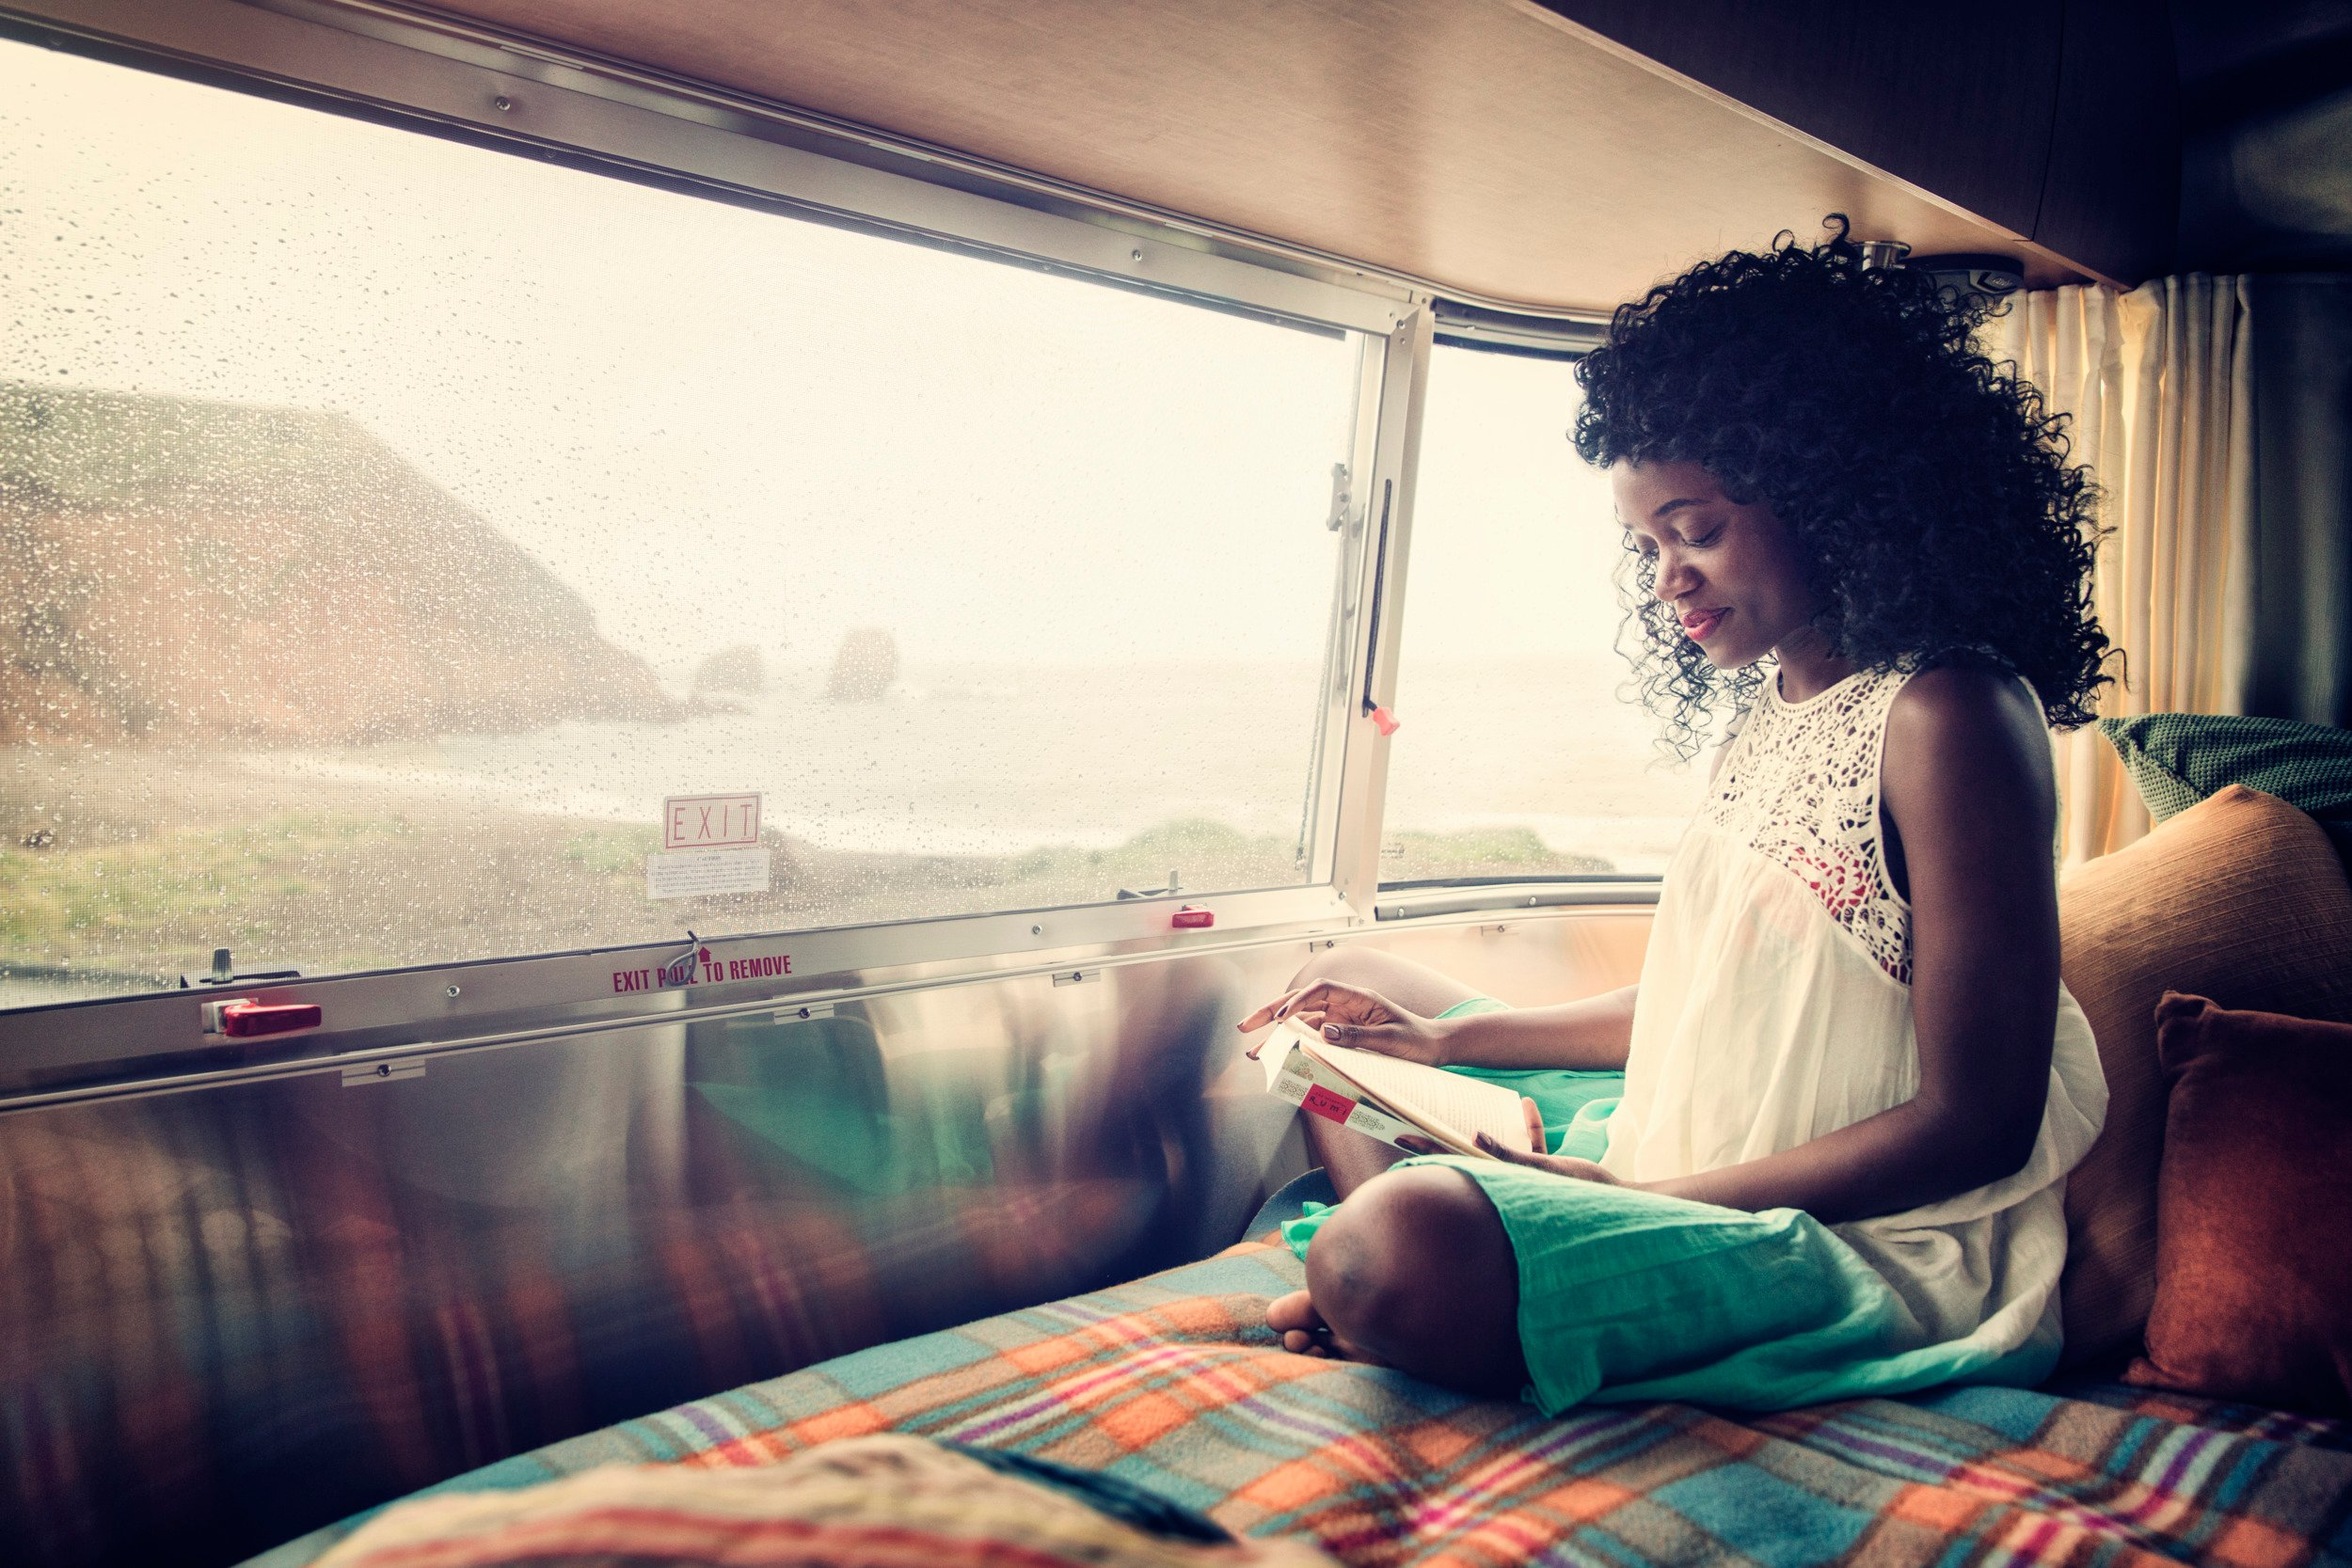 Dometic, caravan, RV, camper, climate, woman, reading, cozy, blanket, inside, ocean, view, window